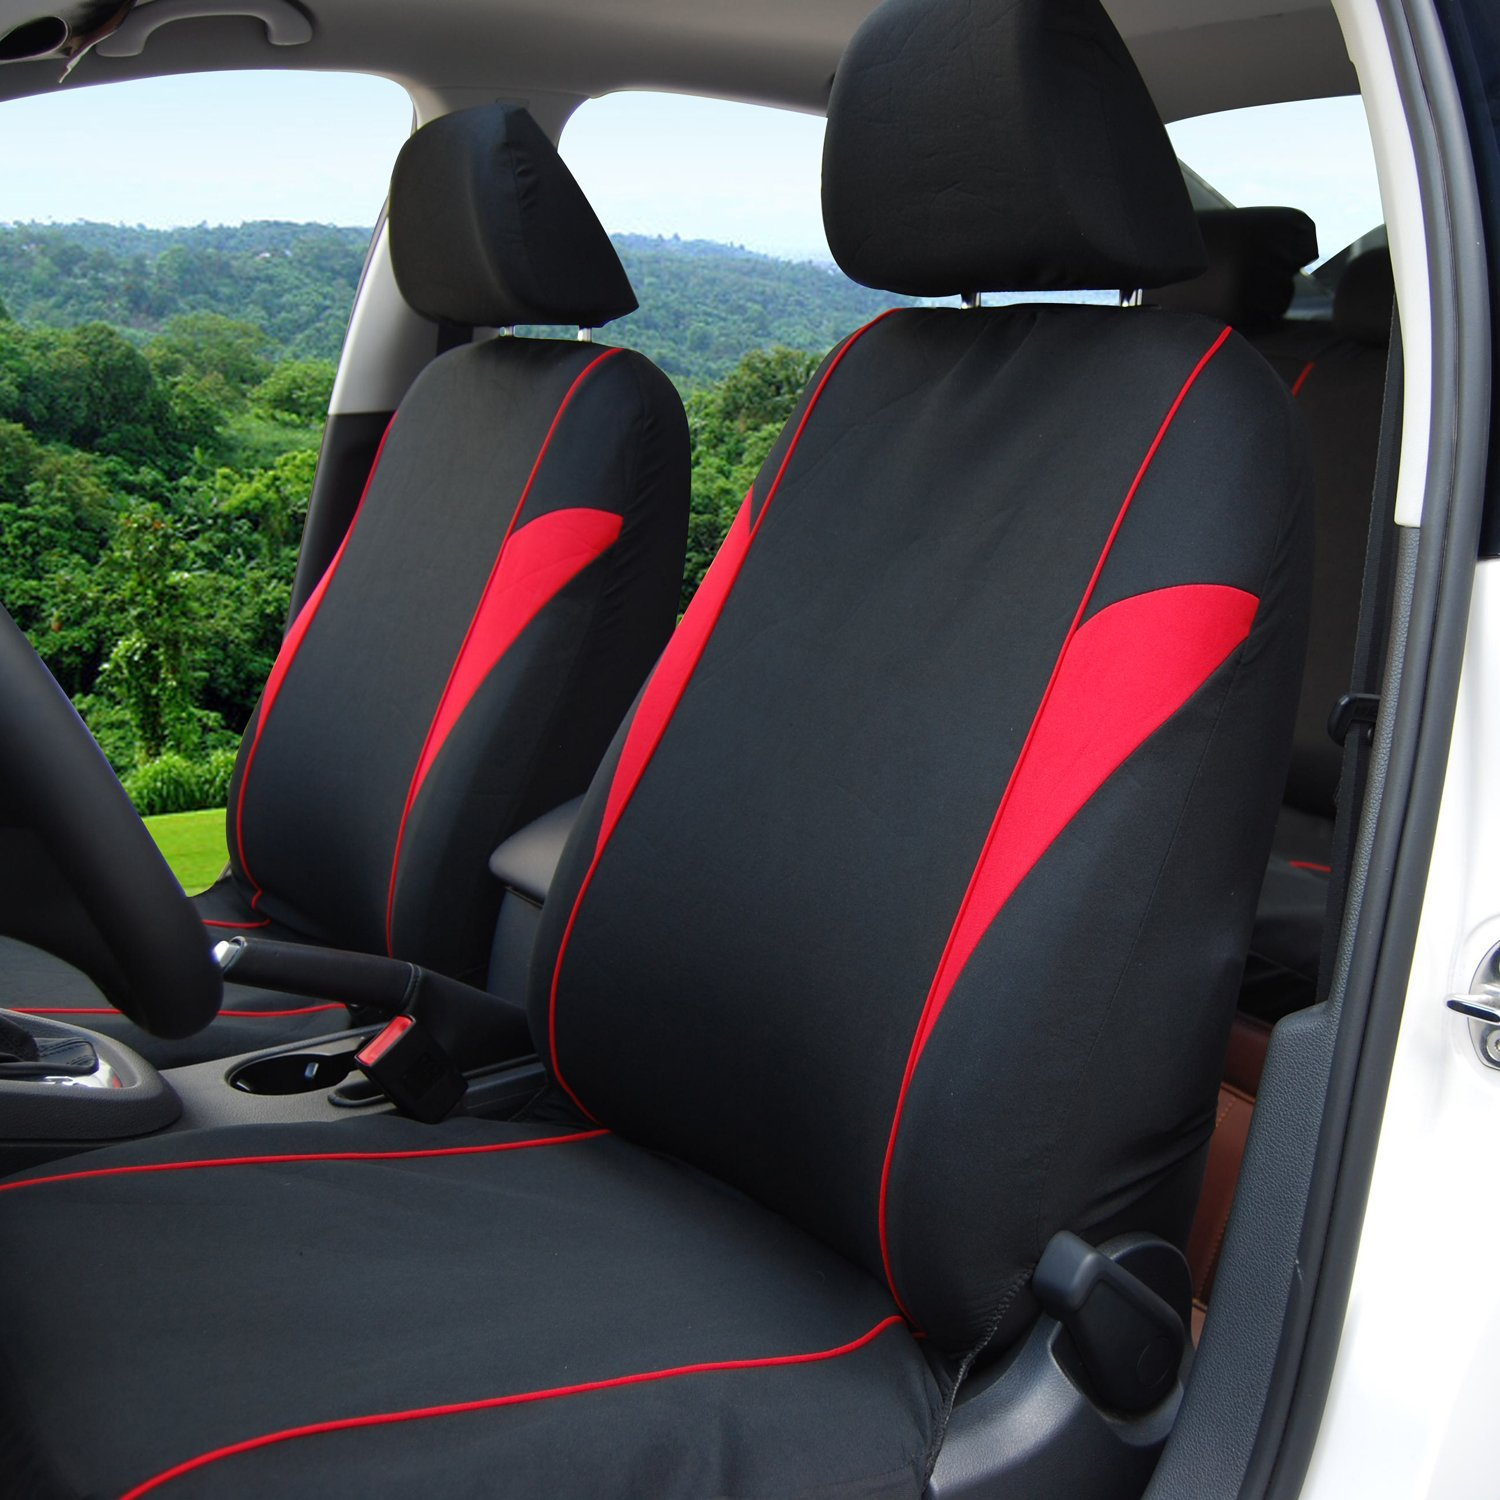 Adeco 9-Piece Car Vehicle Protective Seat Covers